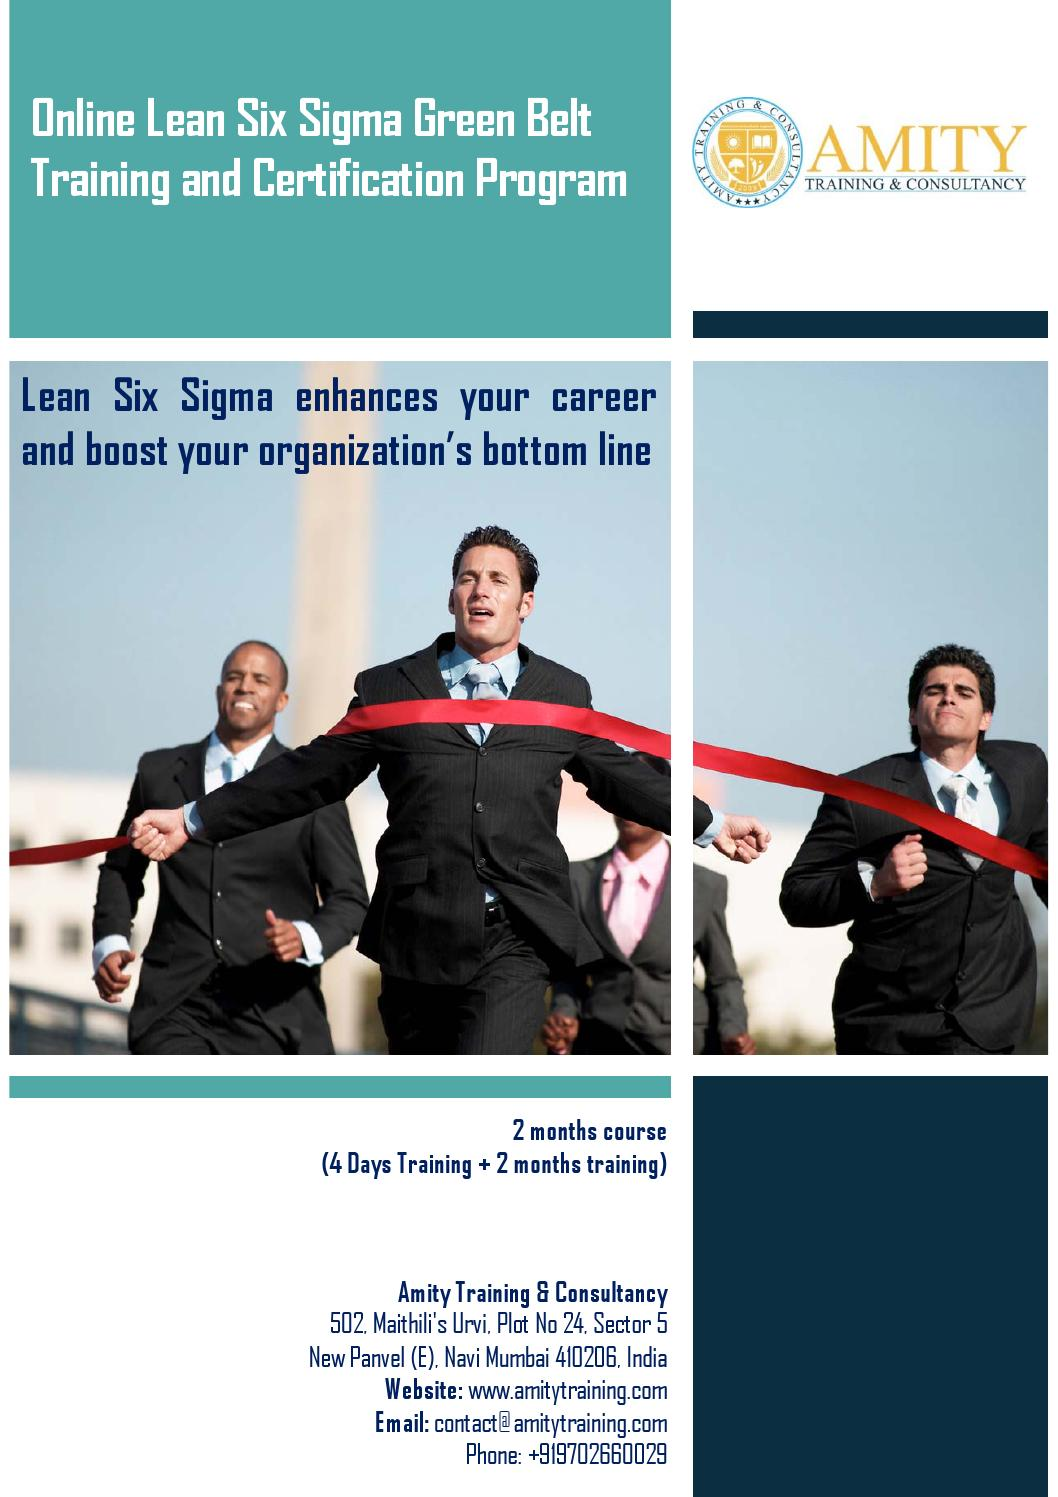 Lean Six Sigma Green Belt Training And Certification Program